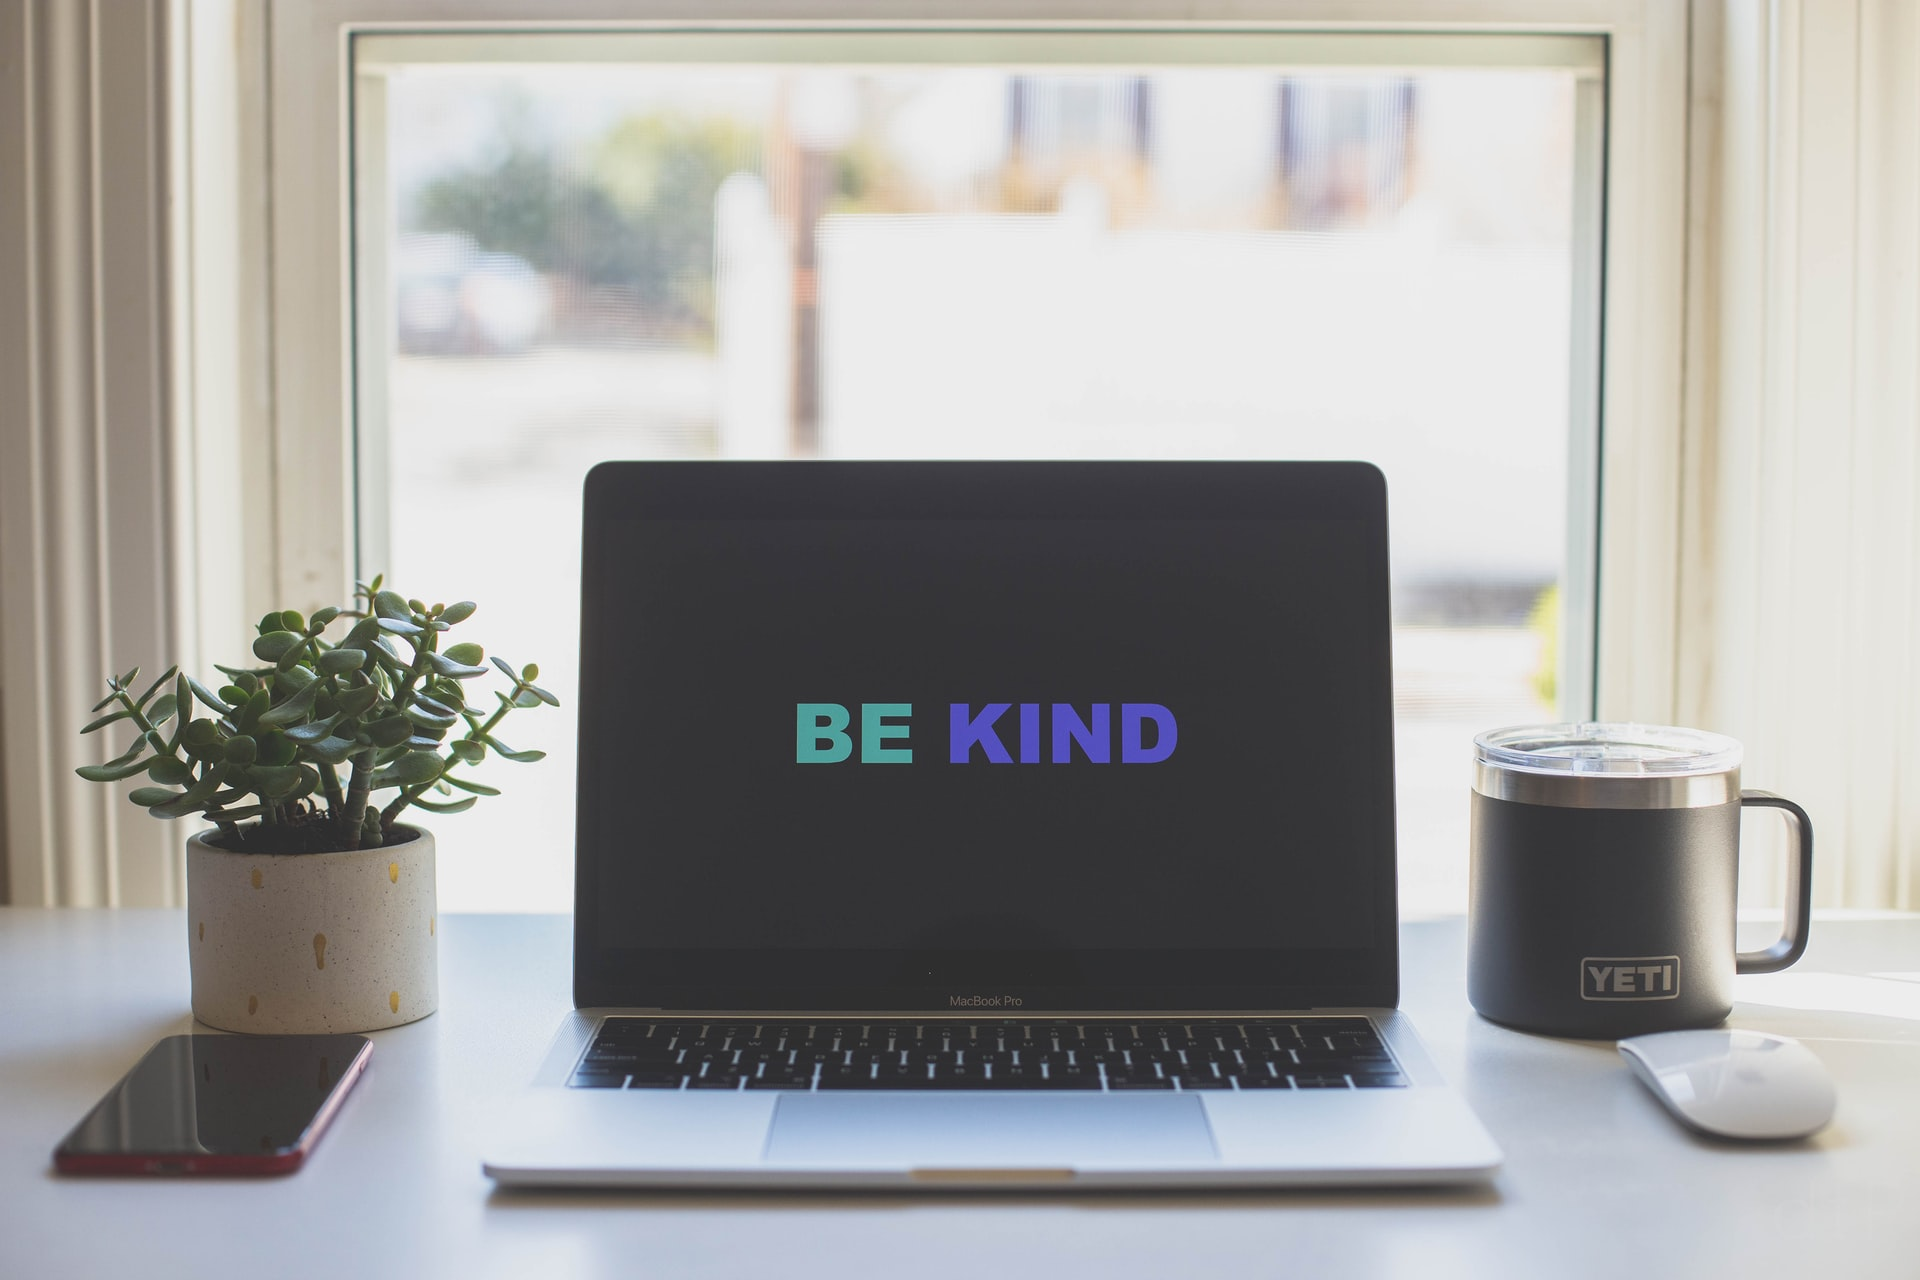 Be kind message on laptop screen